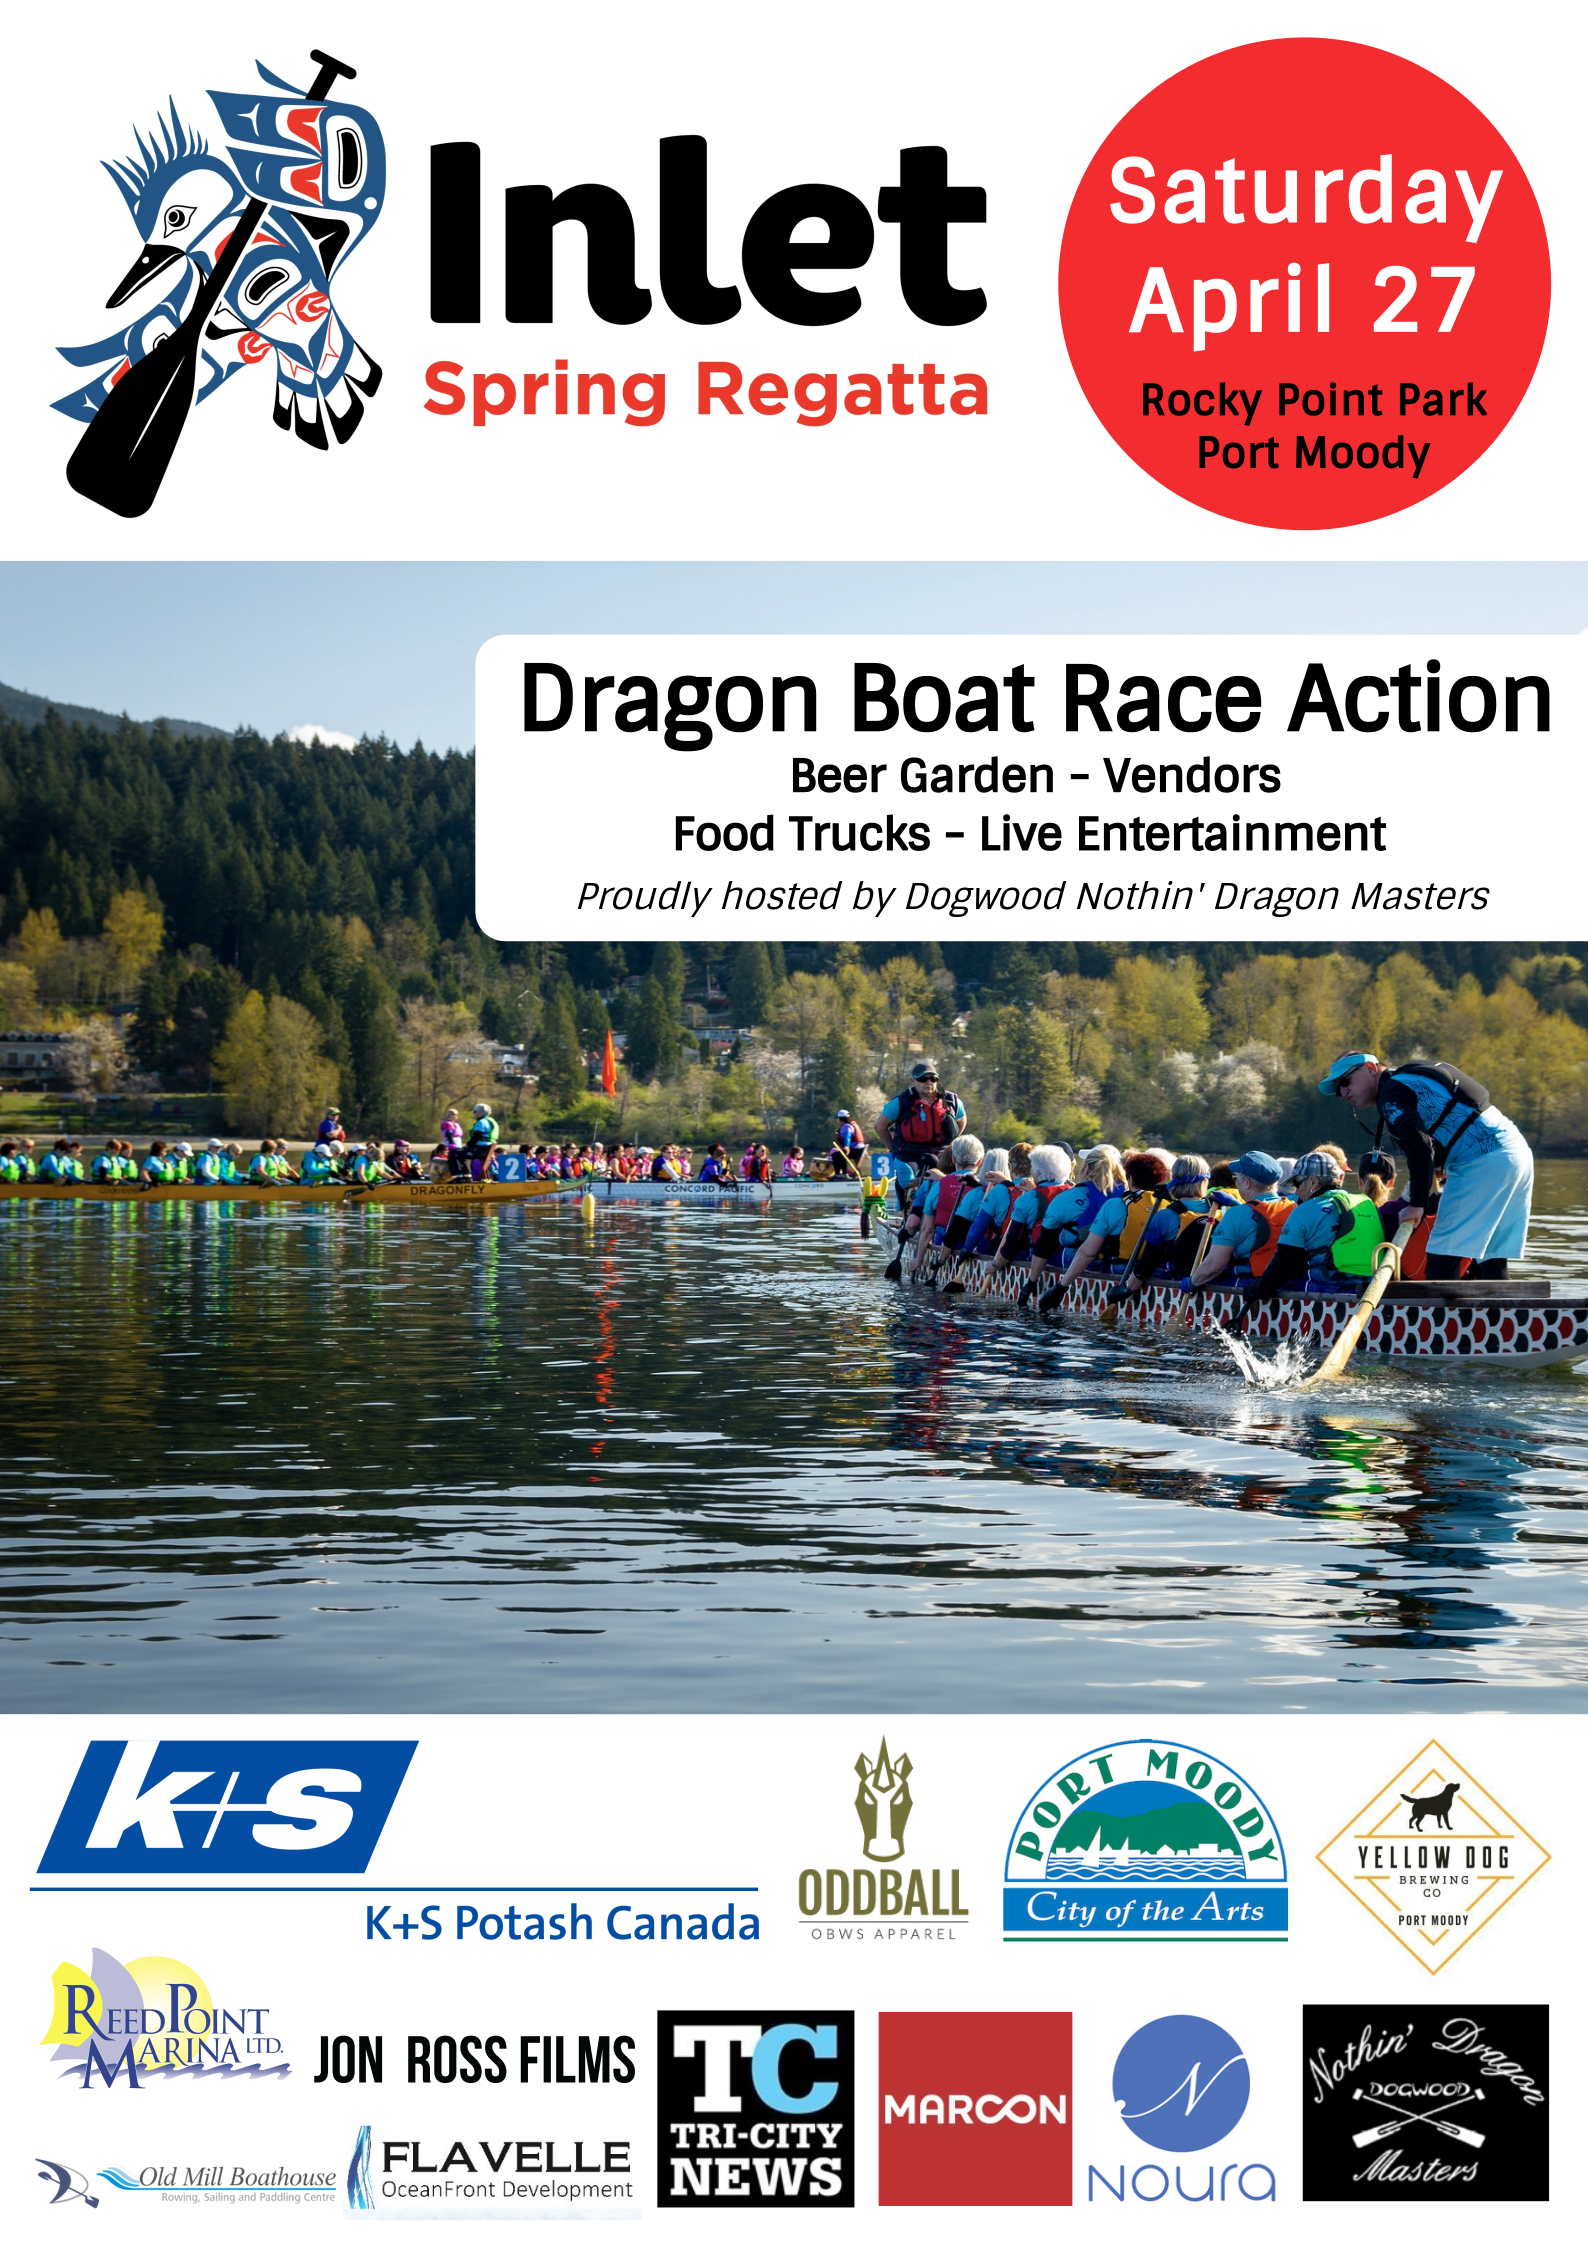 Inlet Regatta 2019 Poster FINAL-2.jpg